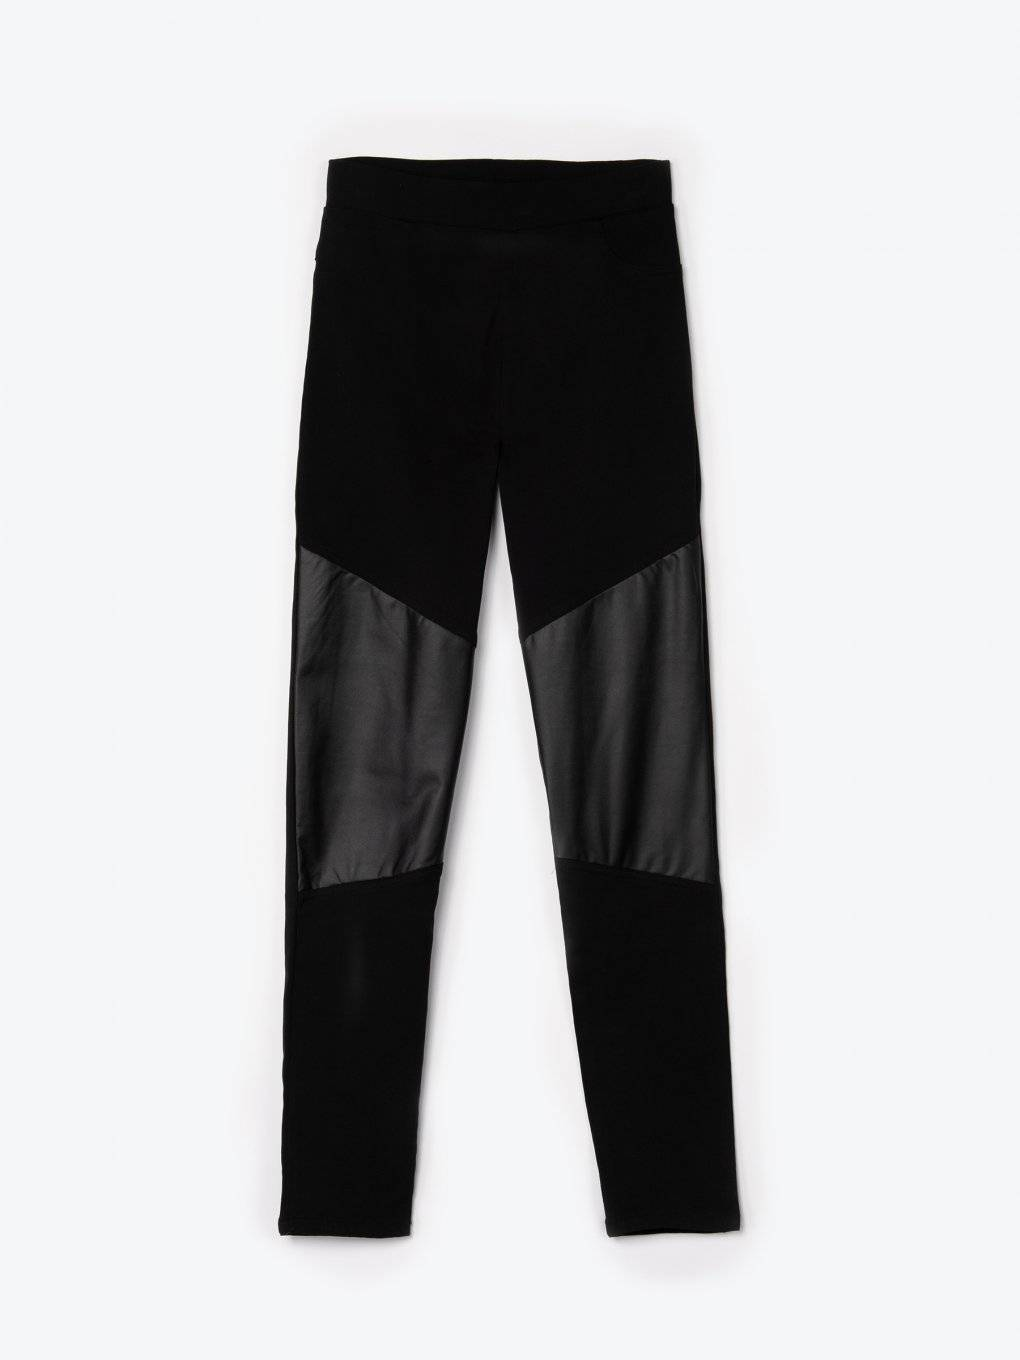 Combined slim trousers